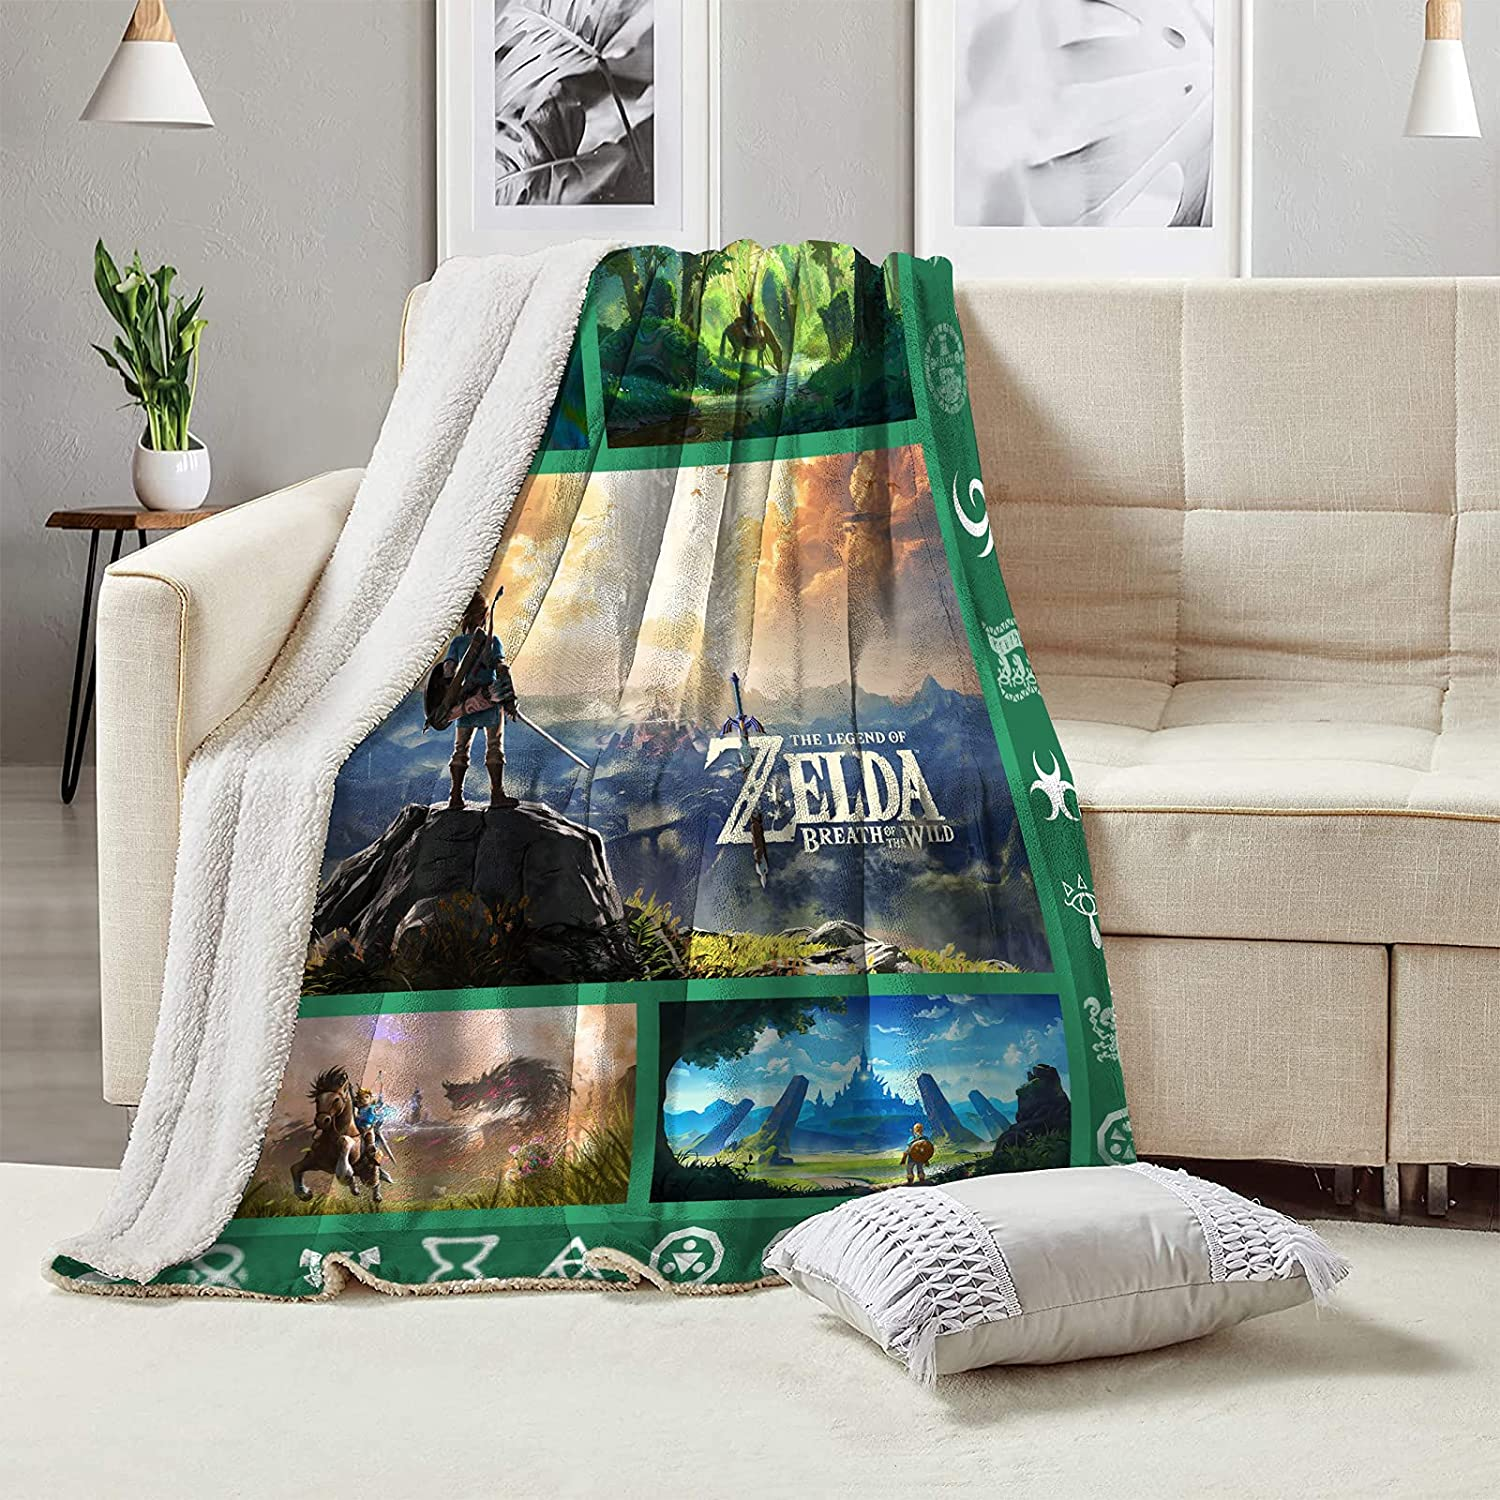 The Le-gend of Zel-da Blanket Warm T Conditioning Home supreme Decor Sale special price Air